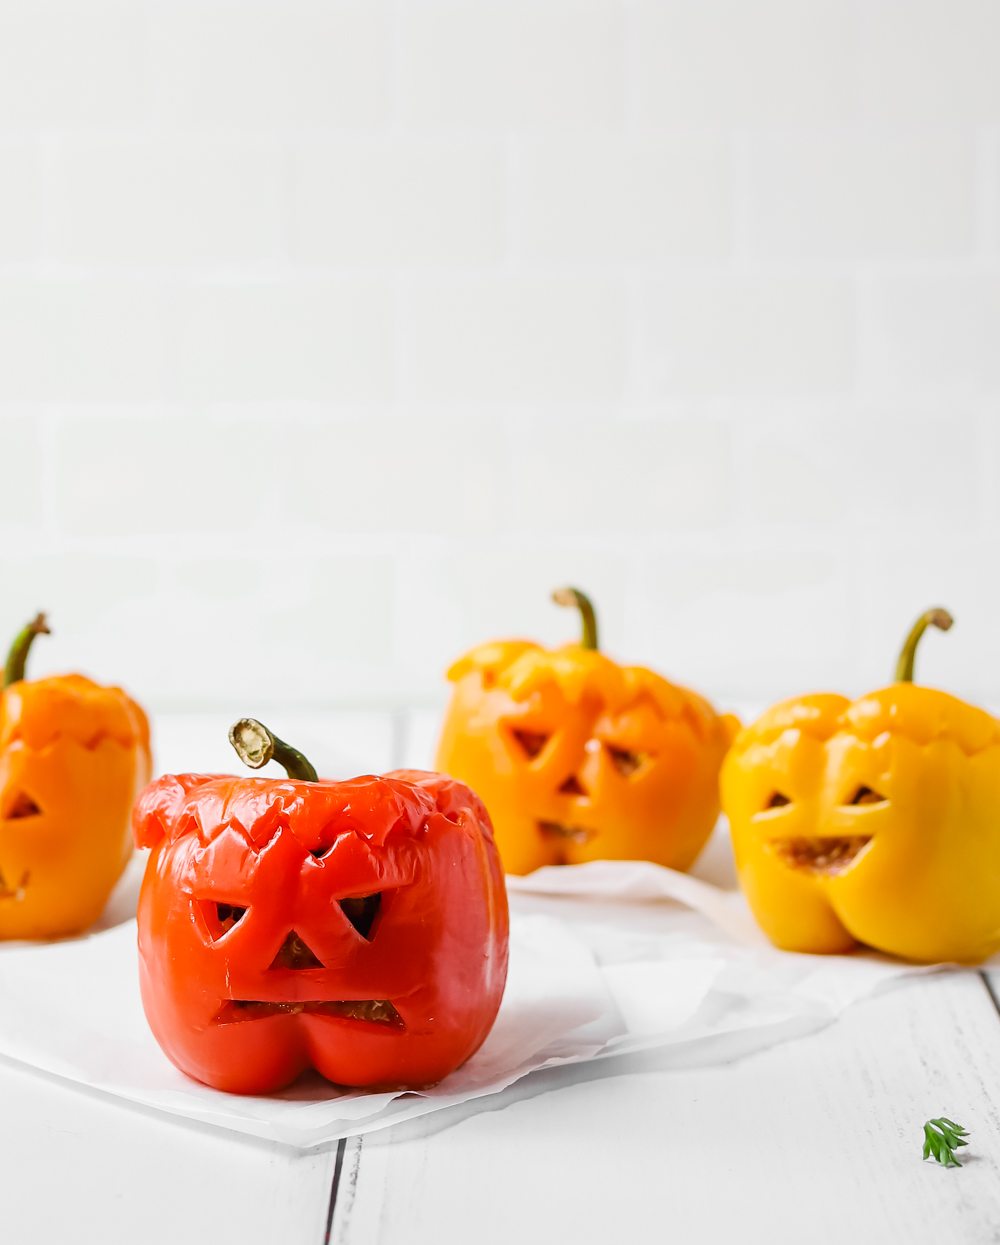 Spooky vegan bell pepper jack o'lanterns on a white wooden table.